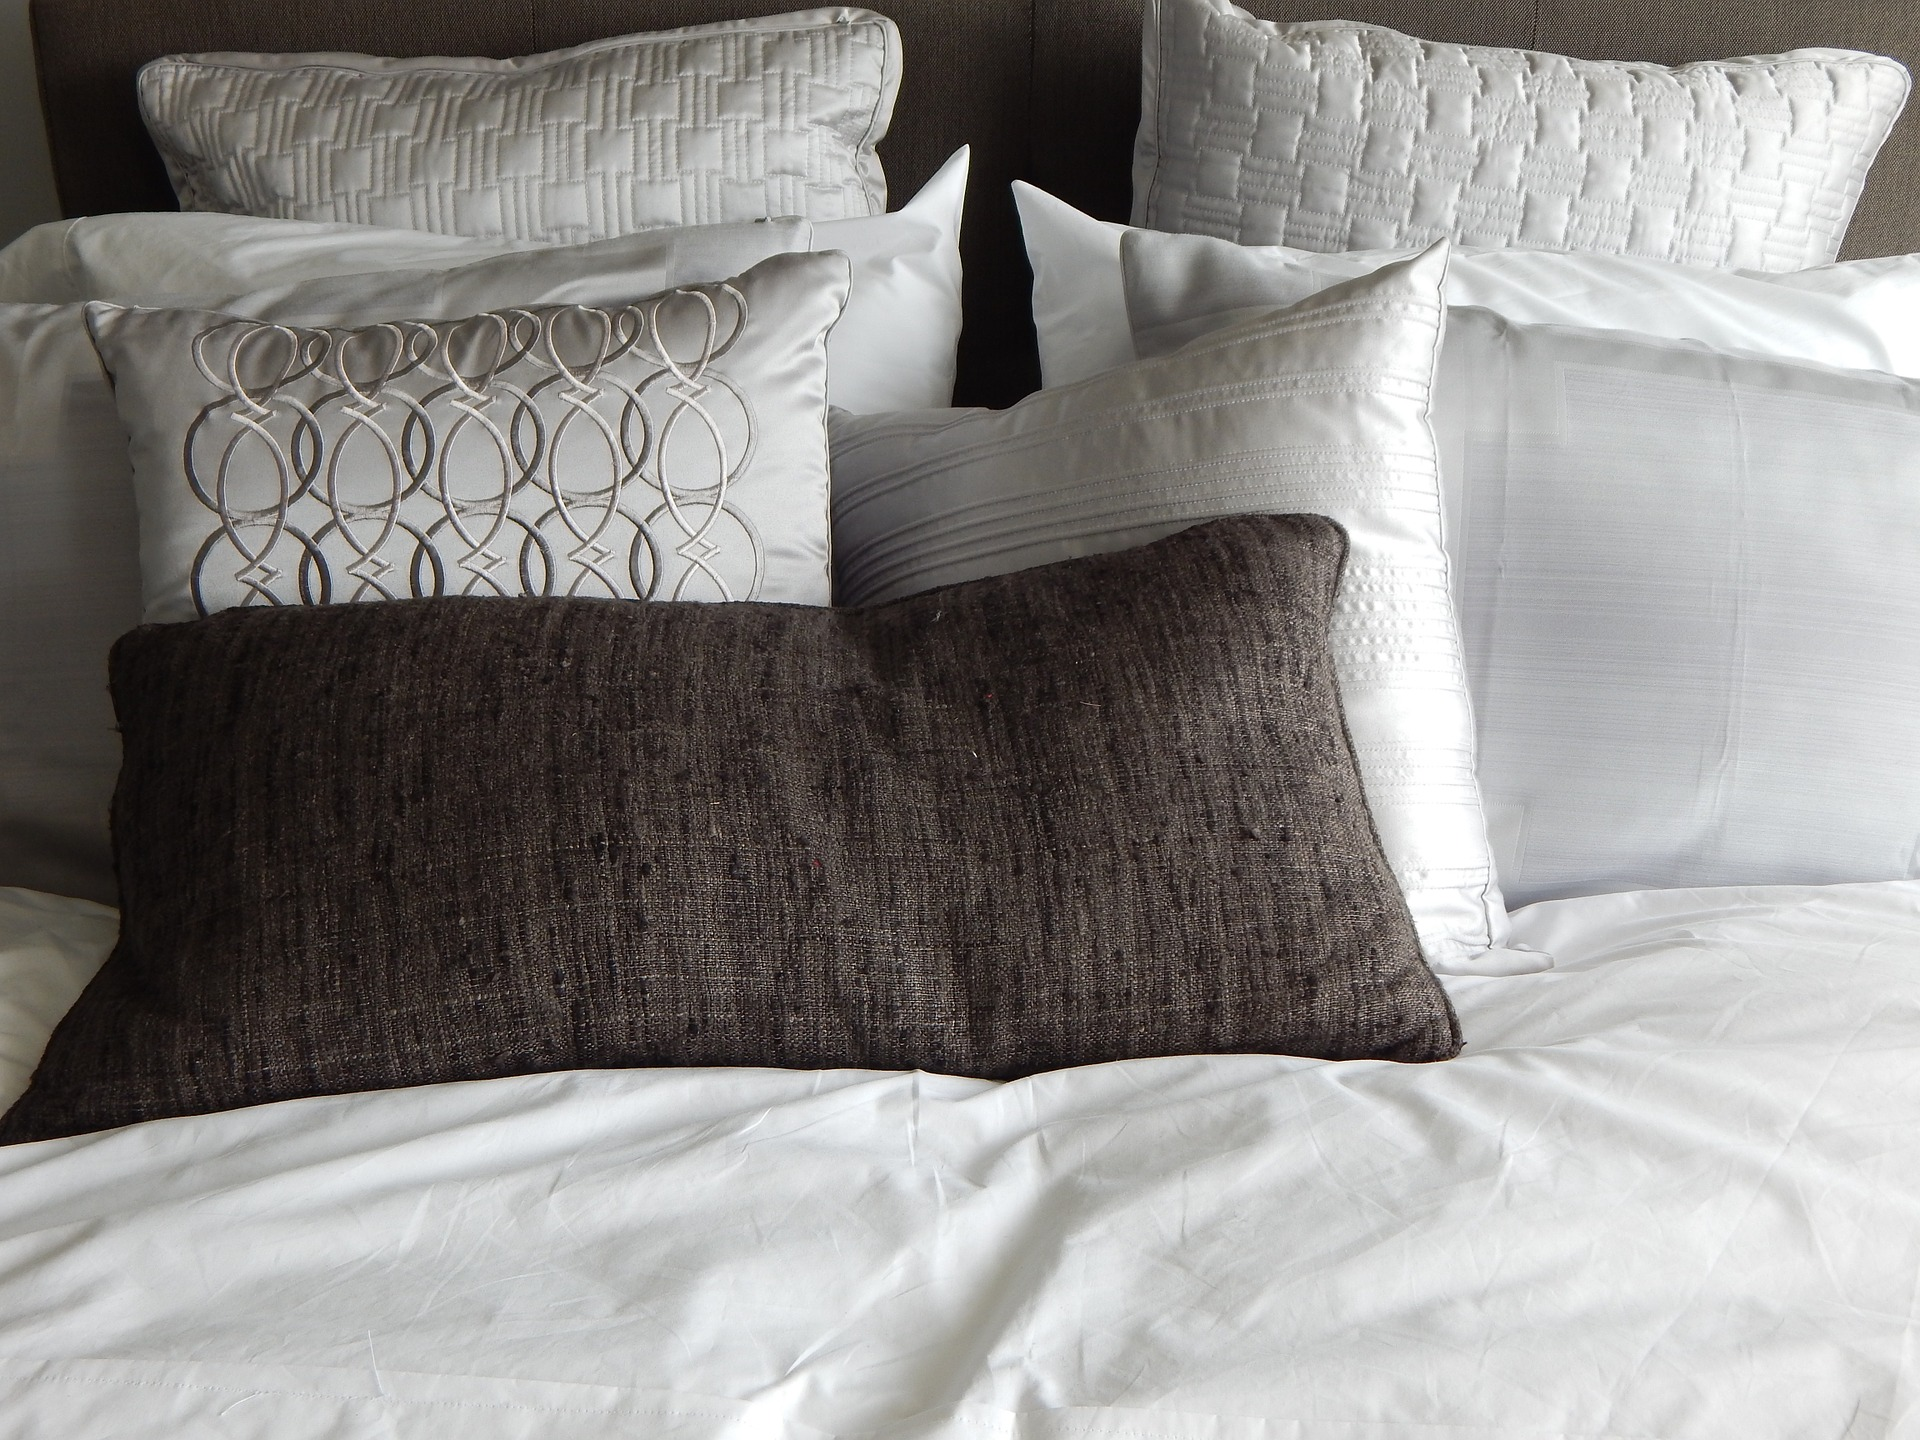 bed nicely made fresh linen